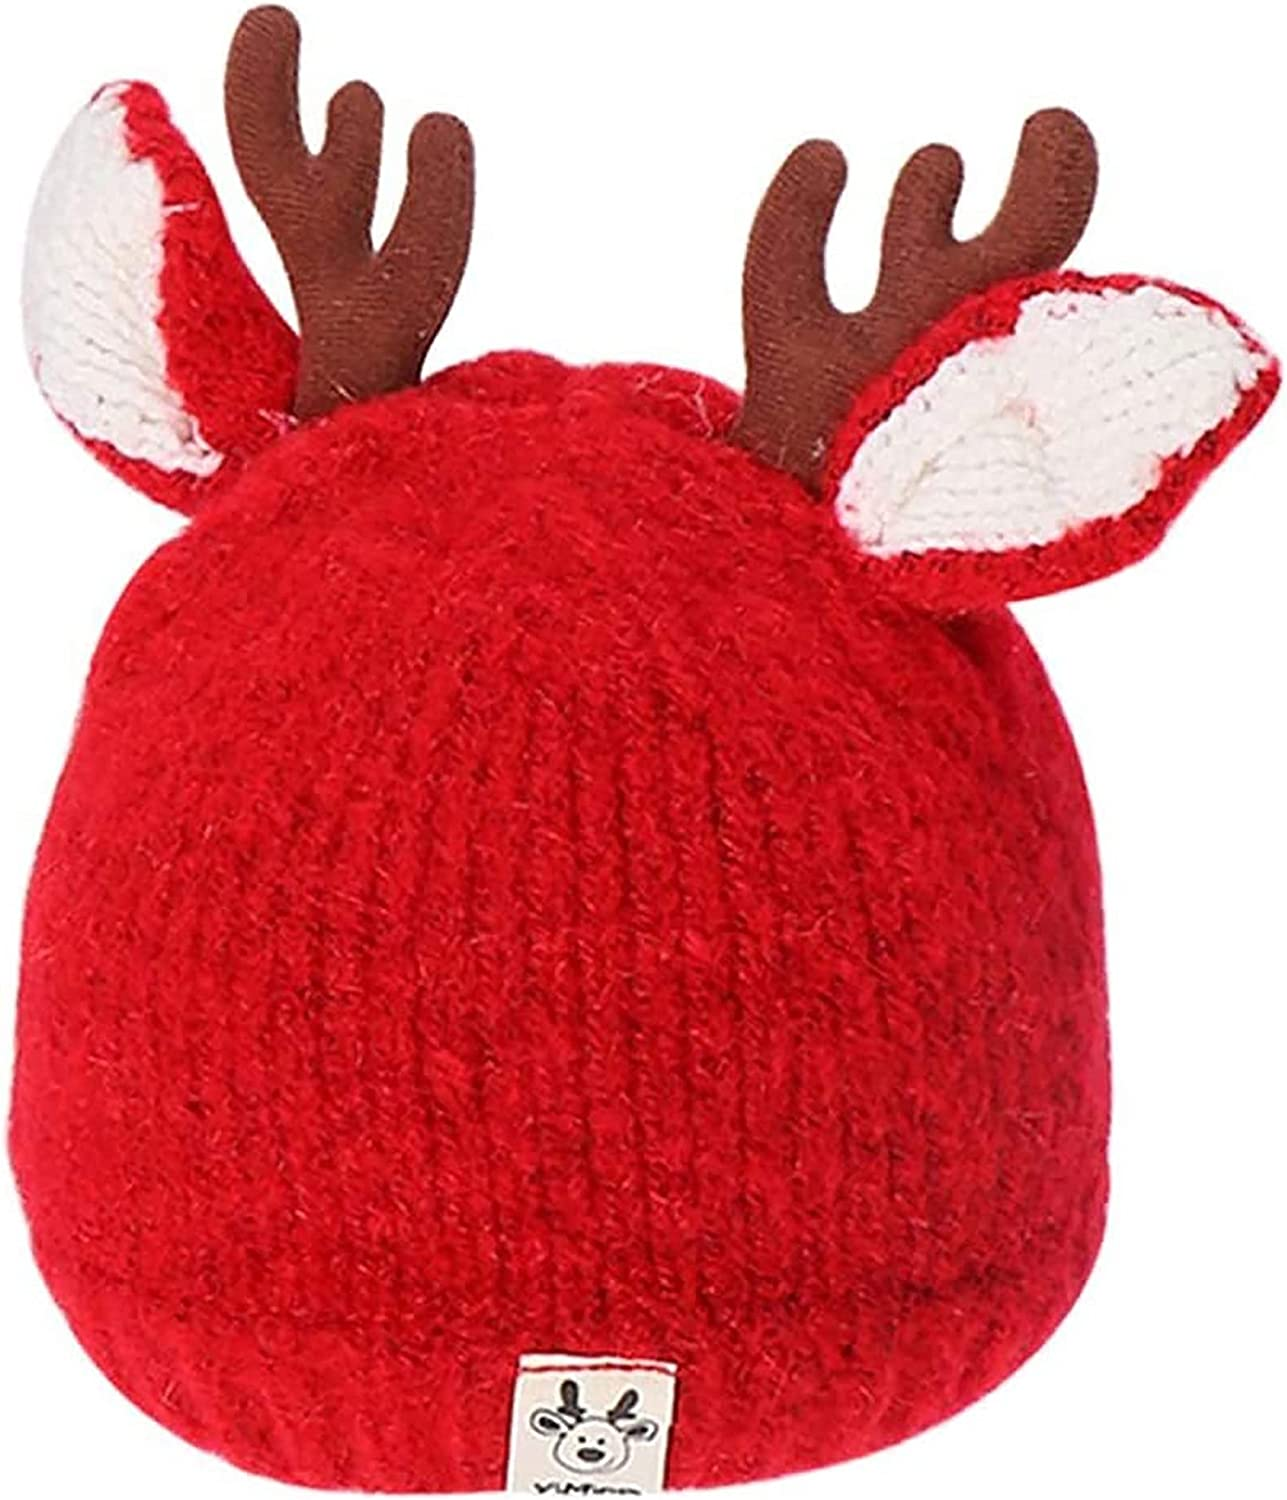 HELOU Christmas Beanie 70% OFF Outlet Hat Knitted Warm 40% OFF Cheap Sale Antlers Reindeer